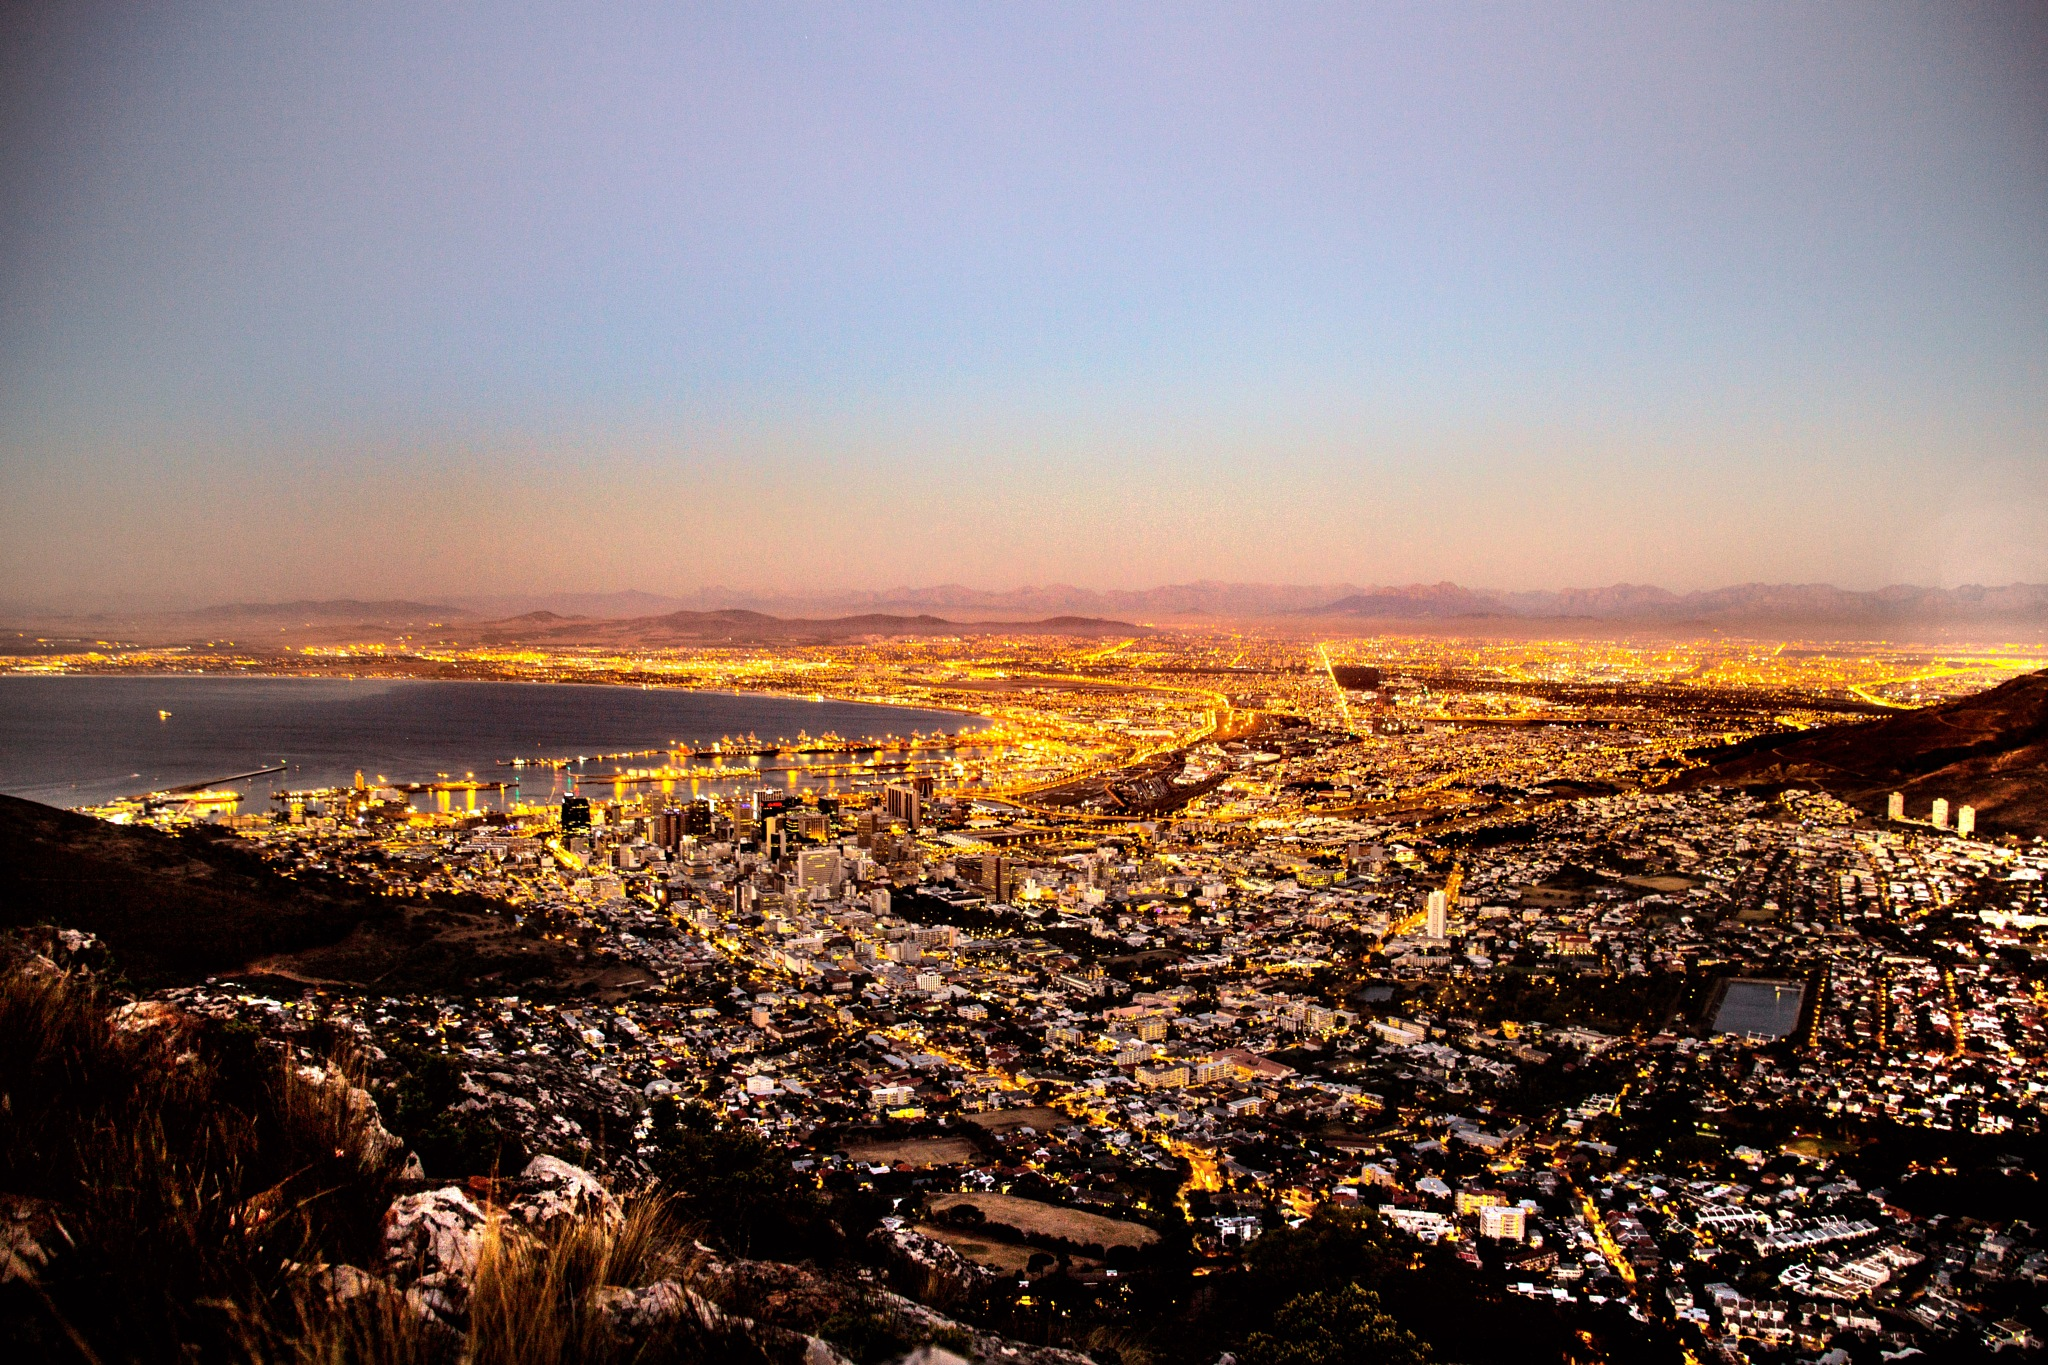 The City of Cape Town and its northern suburbs by Nauta Piscatorque